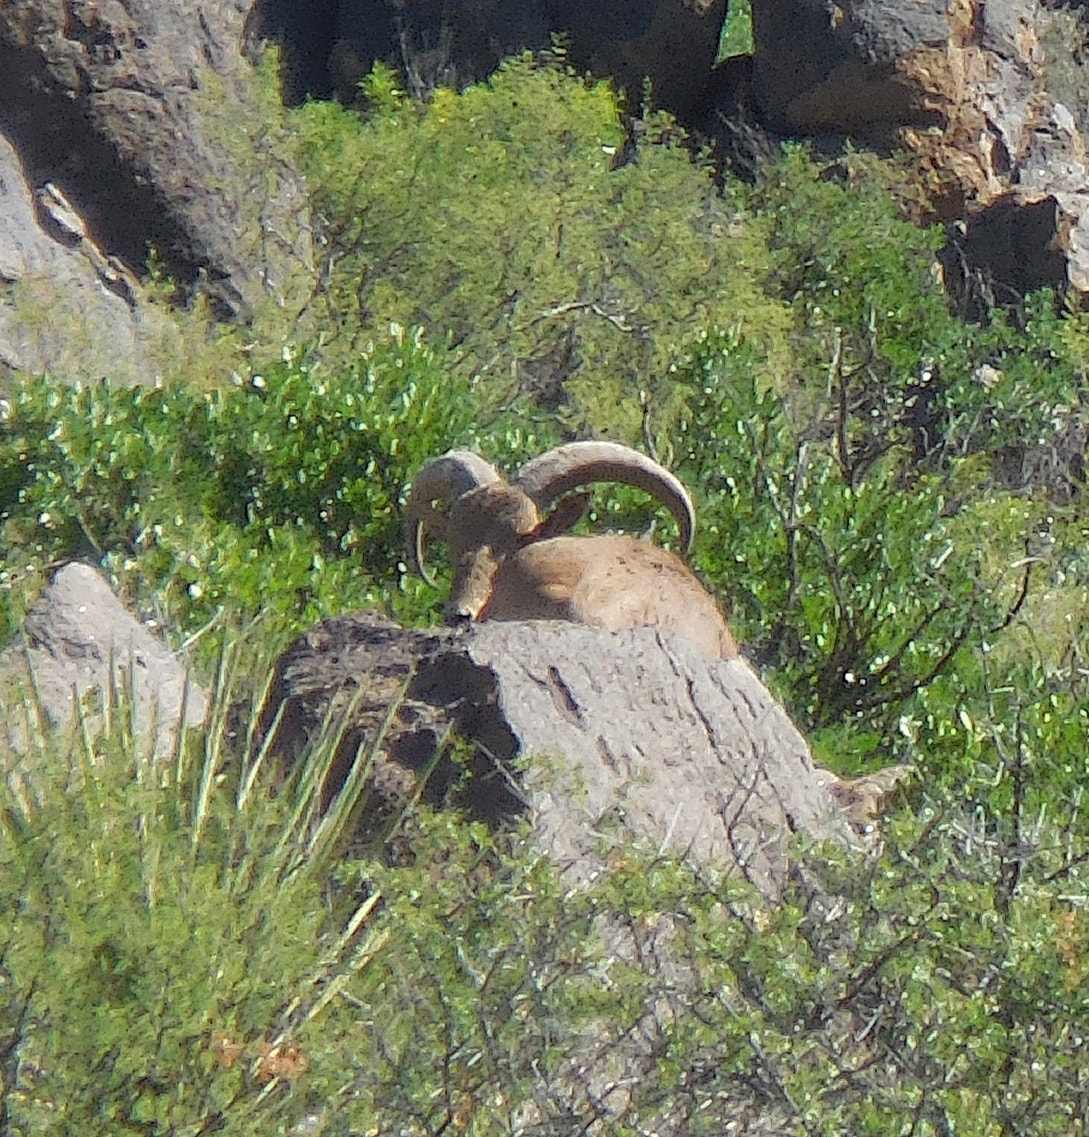 aoudad-central-texas--15586651171782975496